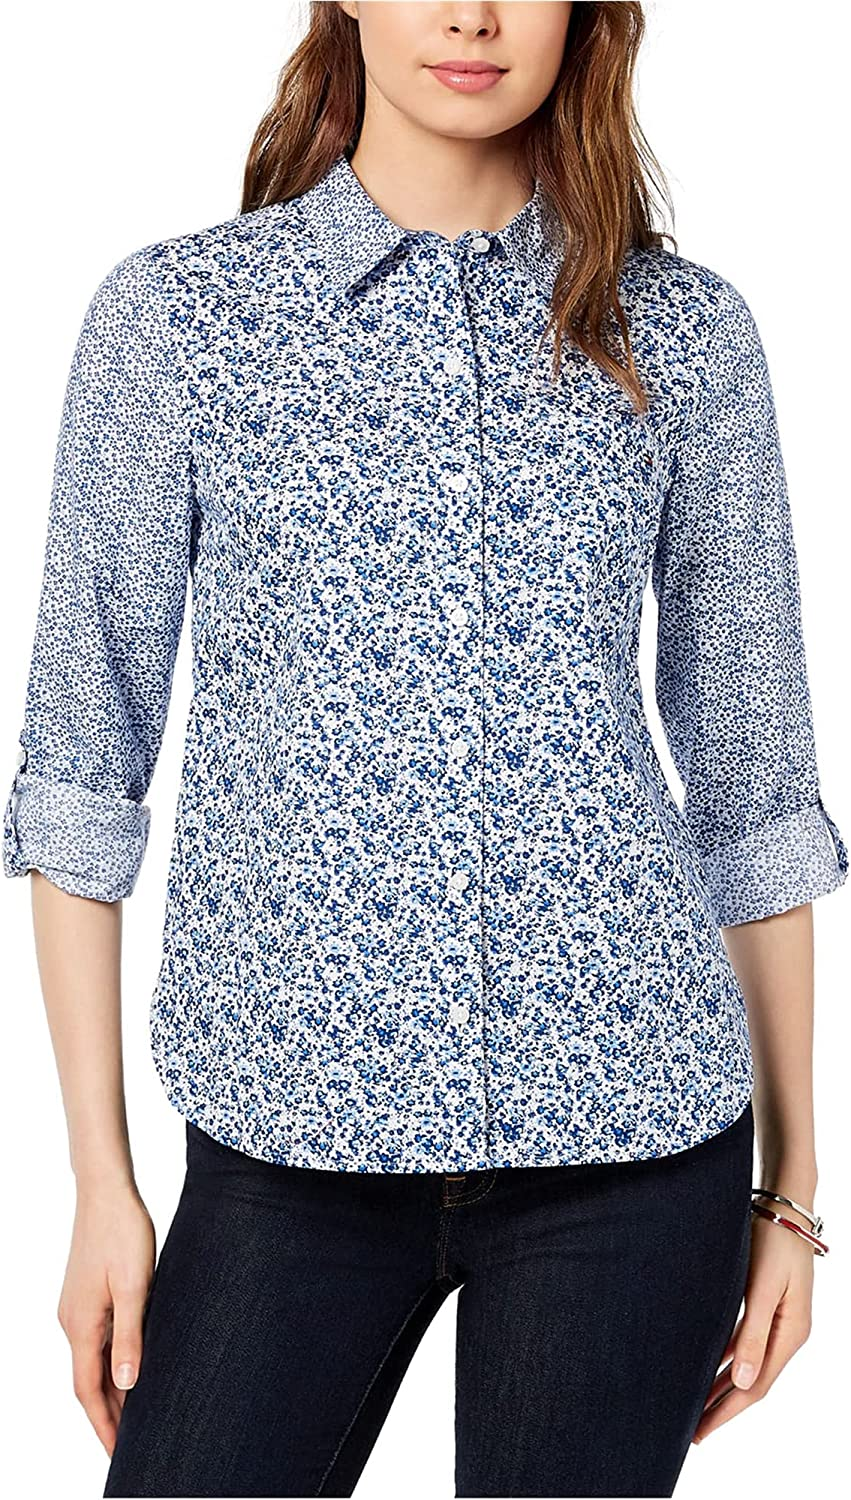 Tommy Hilfiger Womens Printed Roll Tab Button Up Shirt